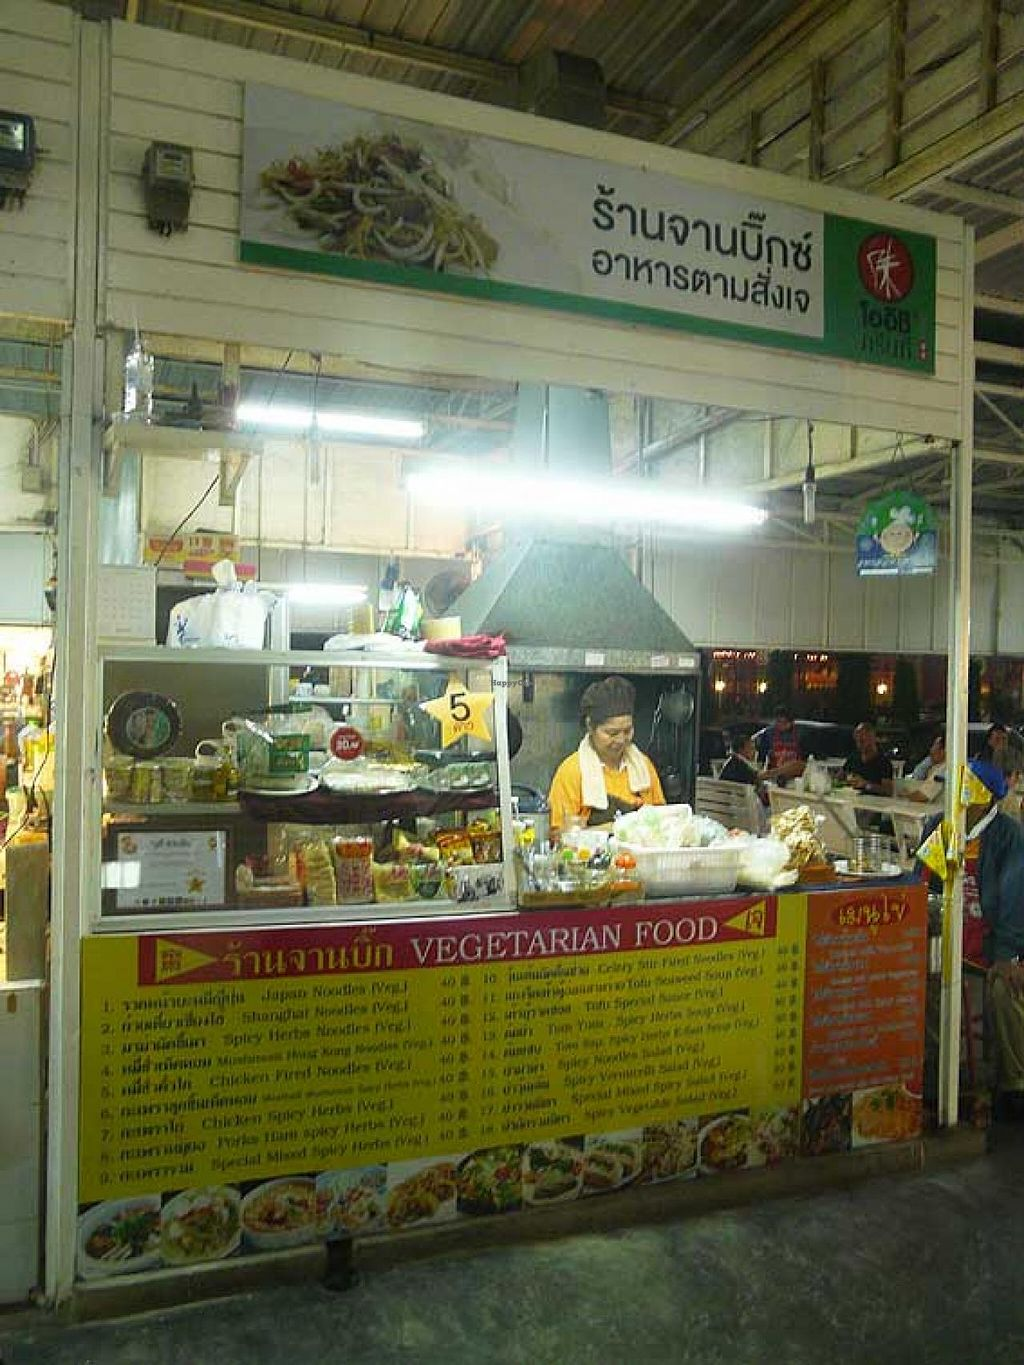 """Photo of CLOSED: Vegetarian Food Stall  by <a href=""""/members/profile/The%20Hammer"""">The Hammer</a> <br/>No buffet but the food is prepared after ordering <br/> January 19, 2014  - <a href='/contact/abuse/image/44619/62750'>Report</a>"""